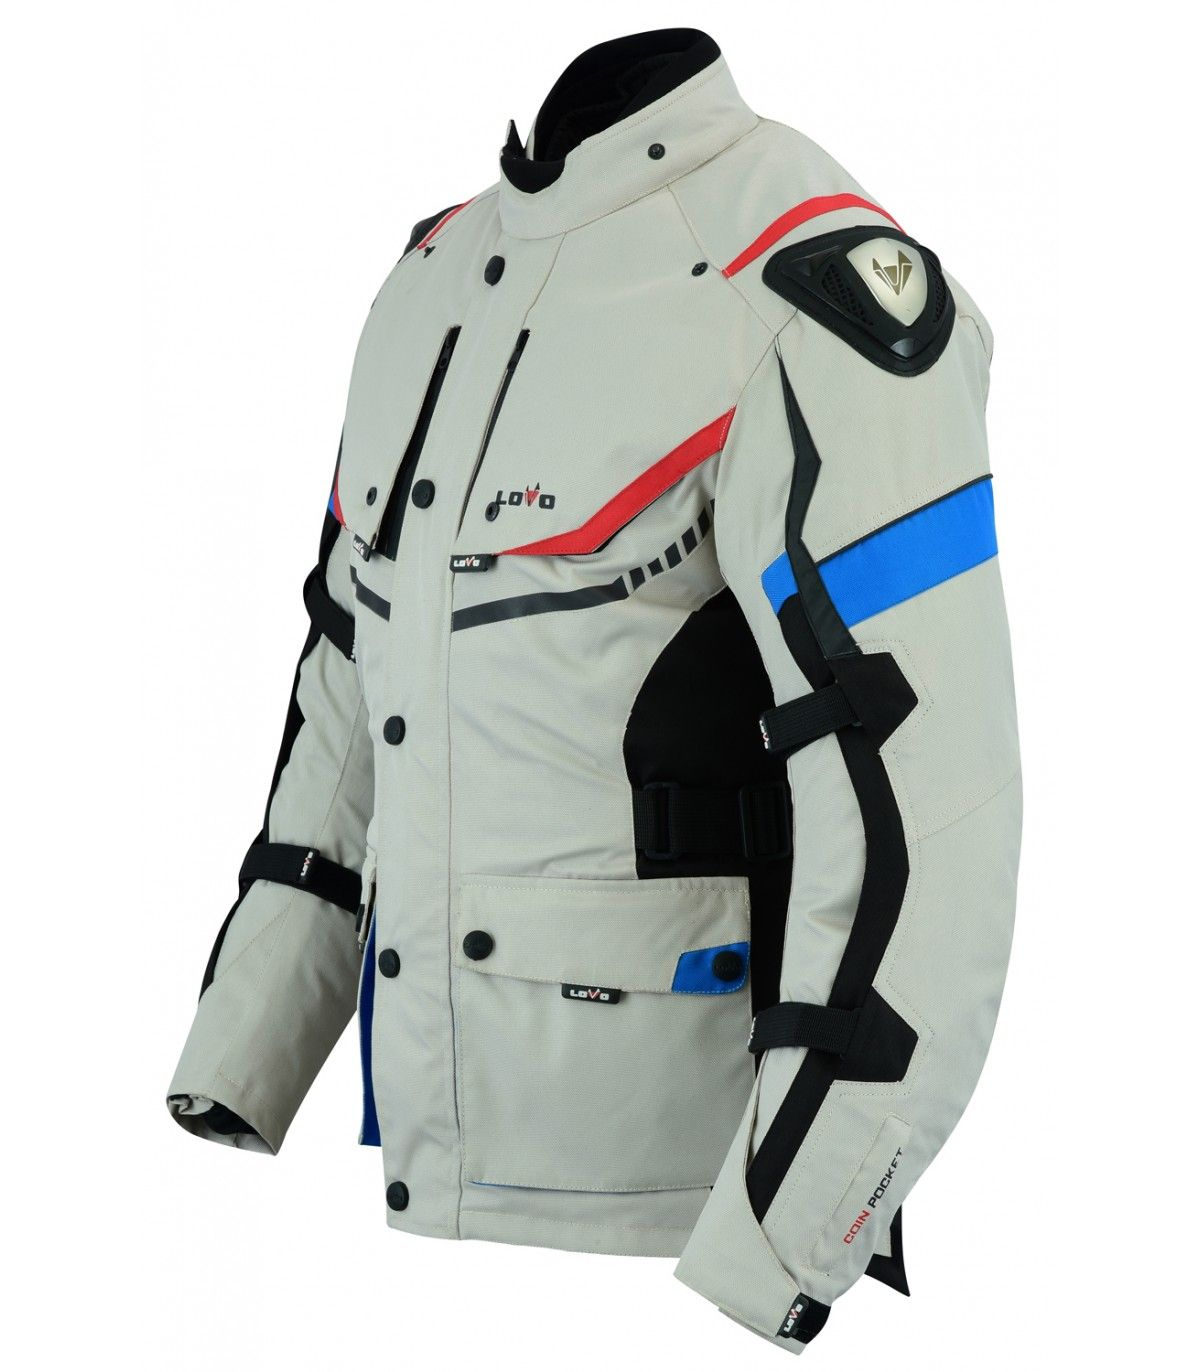 Motorcycle Sports Jacket Motorcycle Short Jacket Lovo Jacket